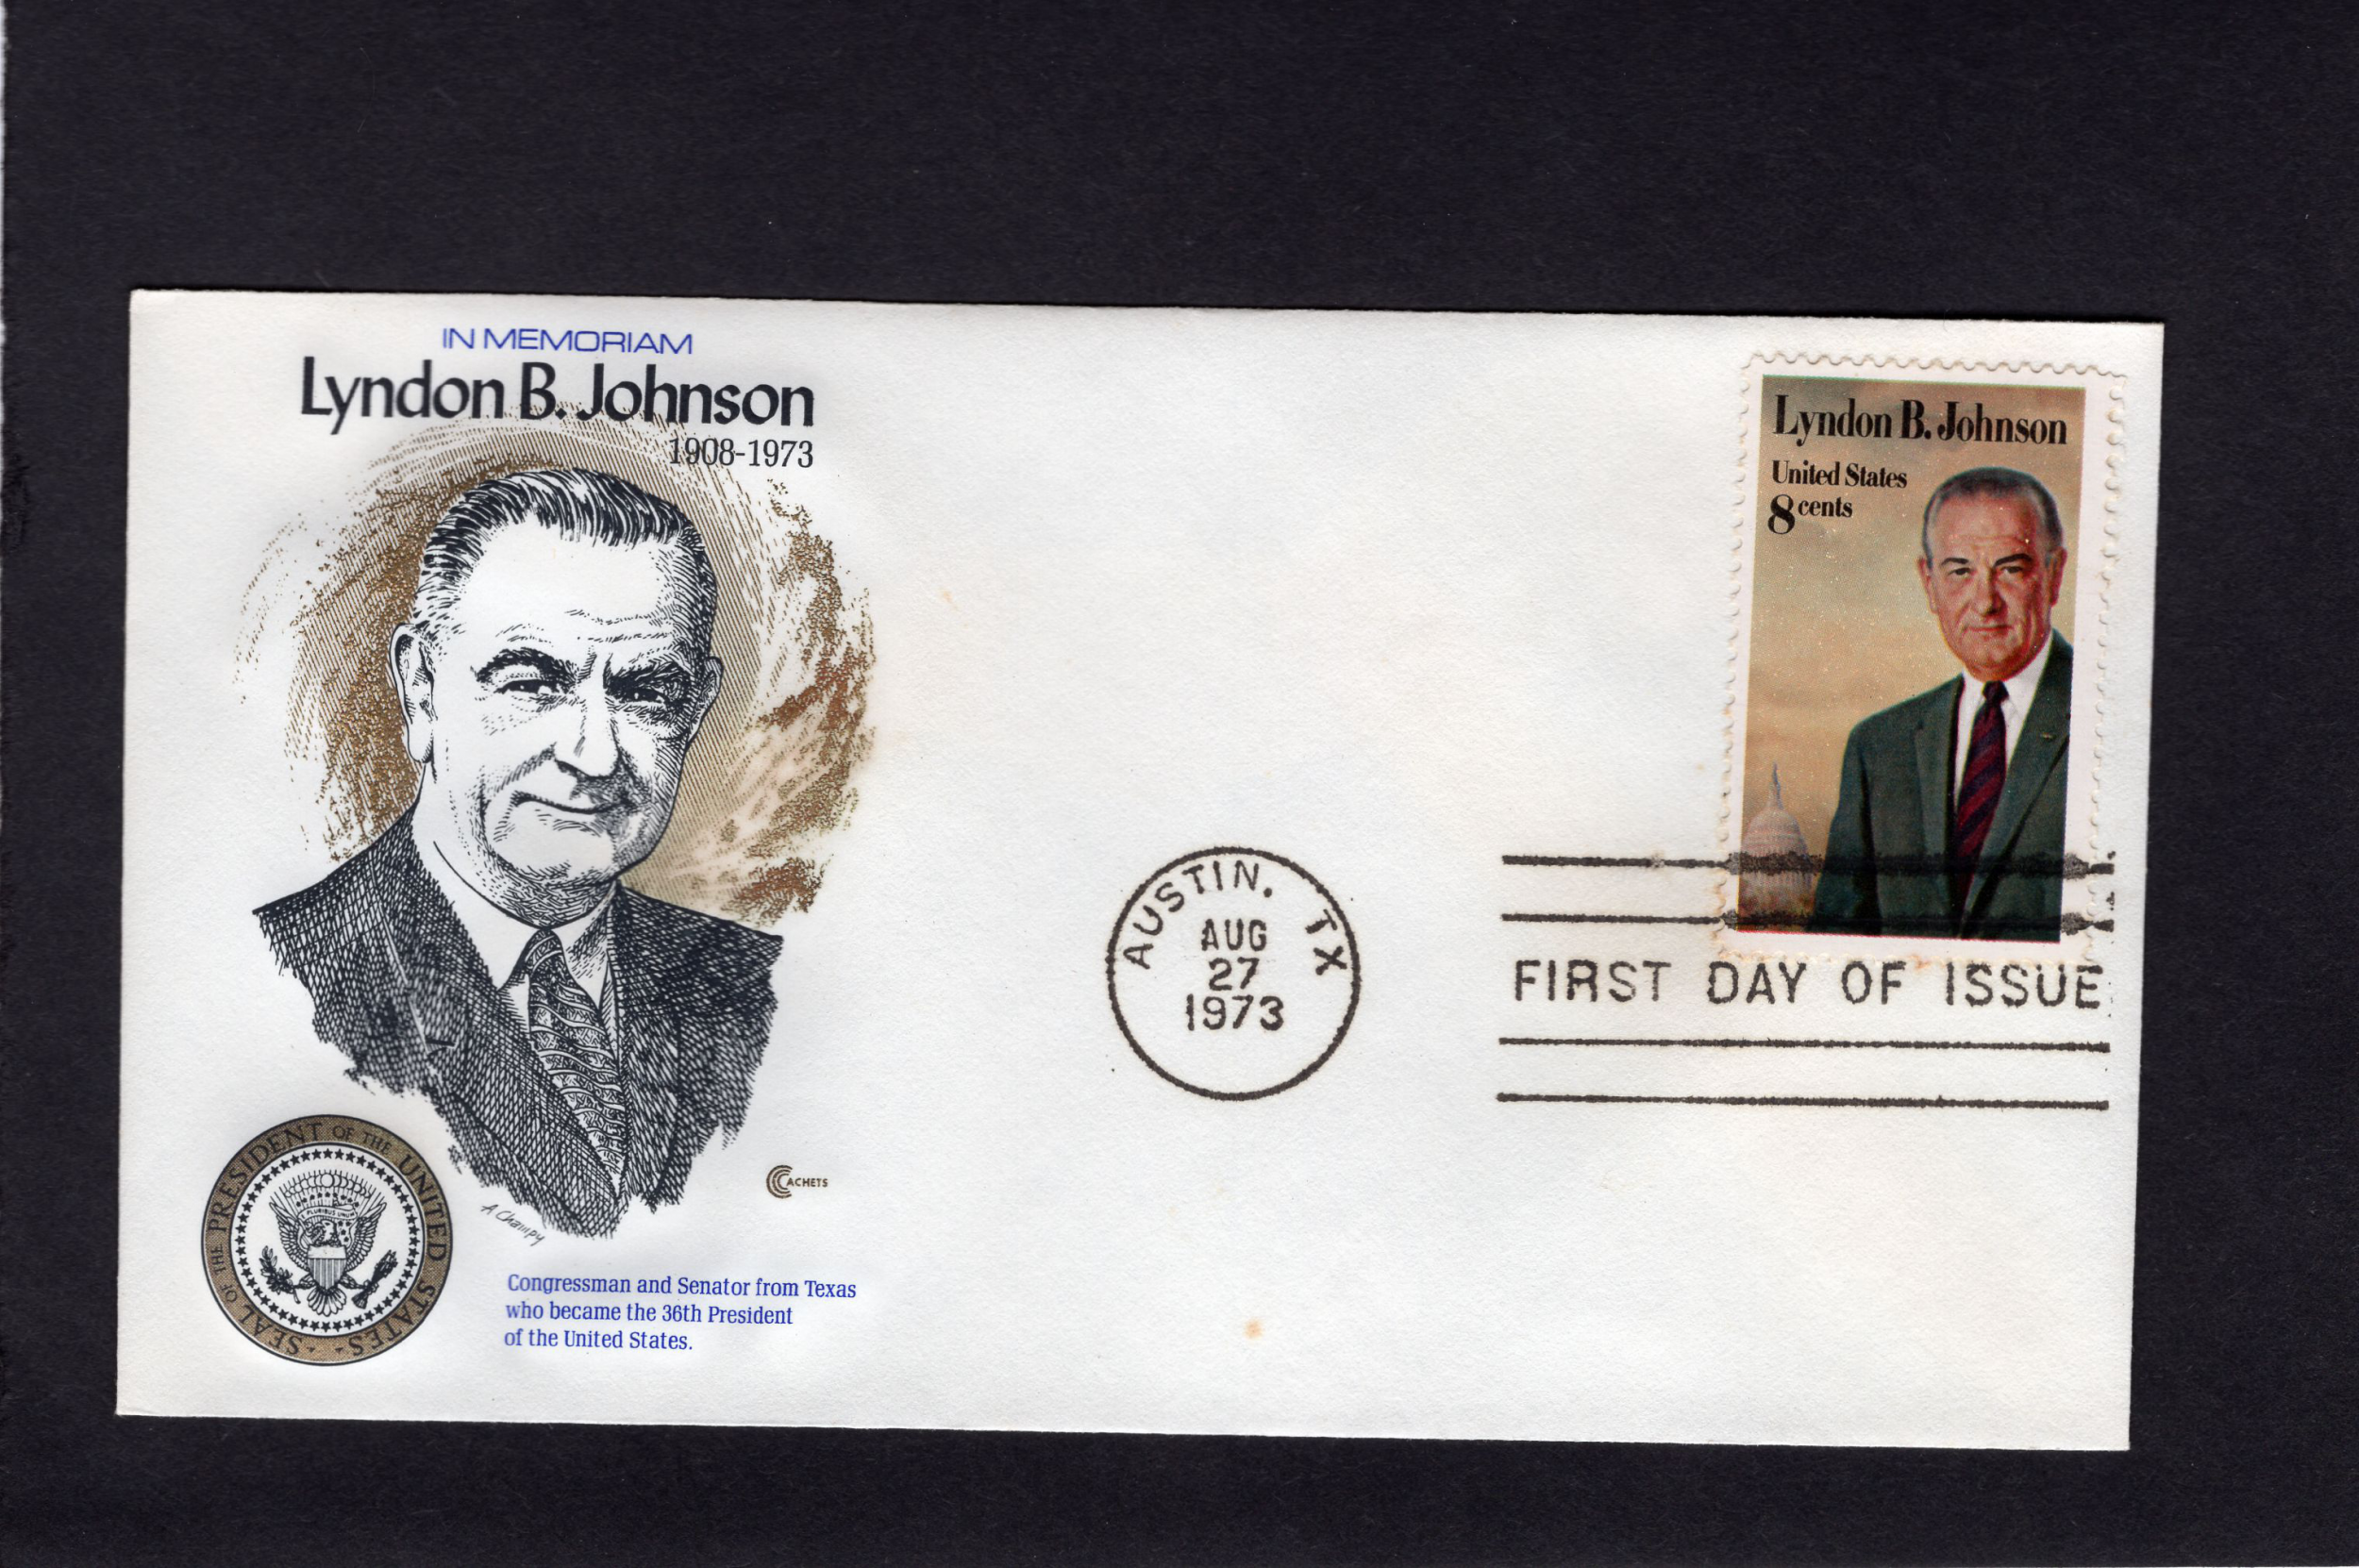 1503 lyndon johnson  fdc  ccc  unaddressed  cv  1 00